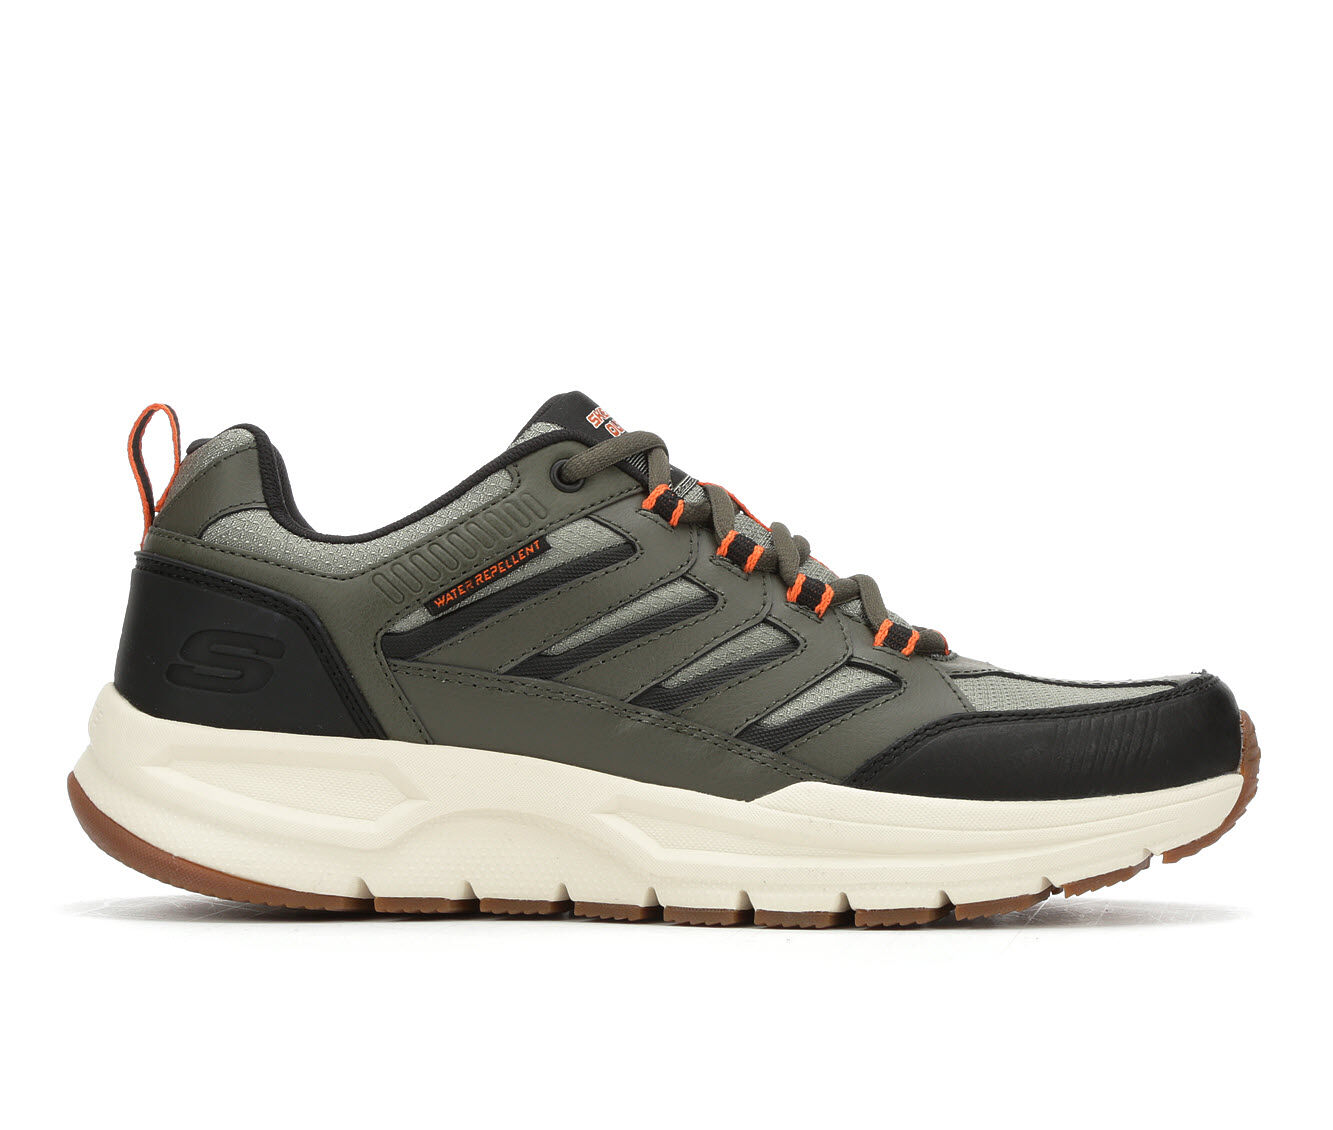 discount Men's Skechers Escape Plan 2.0 Running Shoes Ol/Bk/Gy/Org/Wh